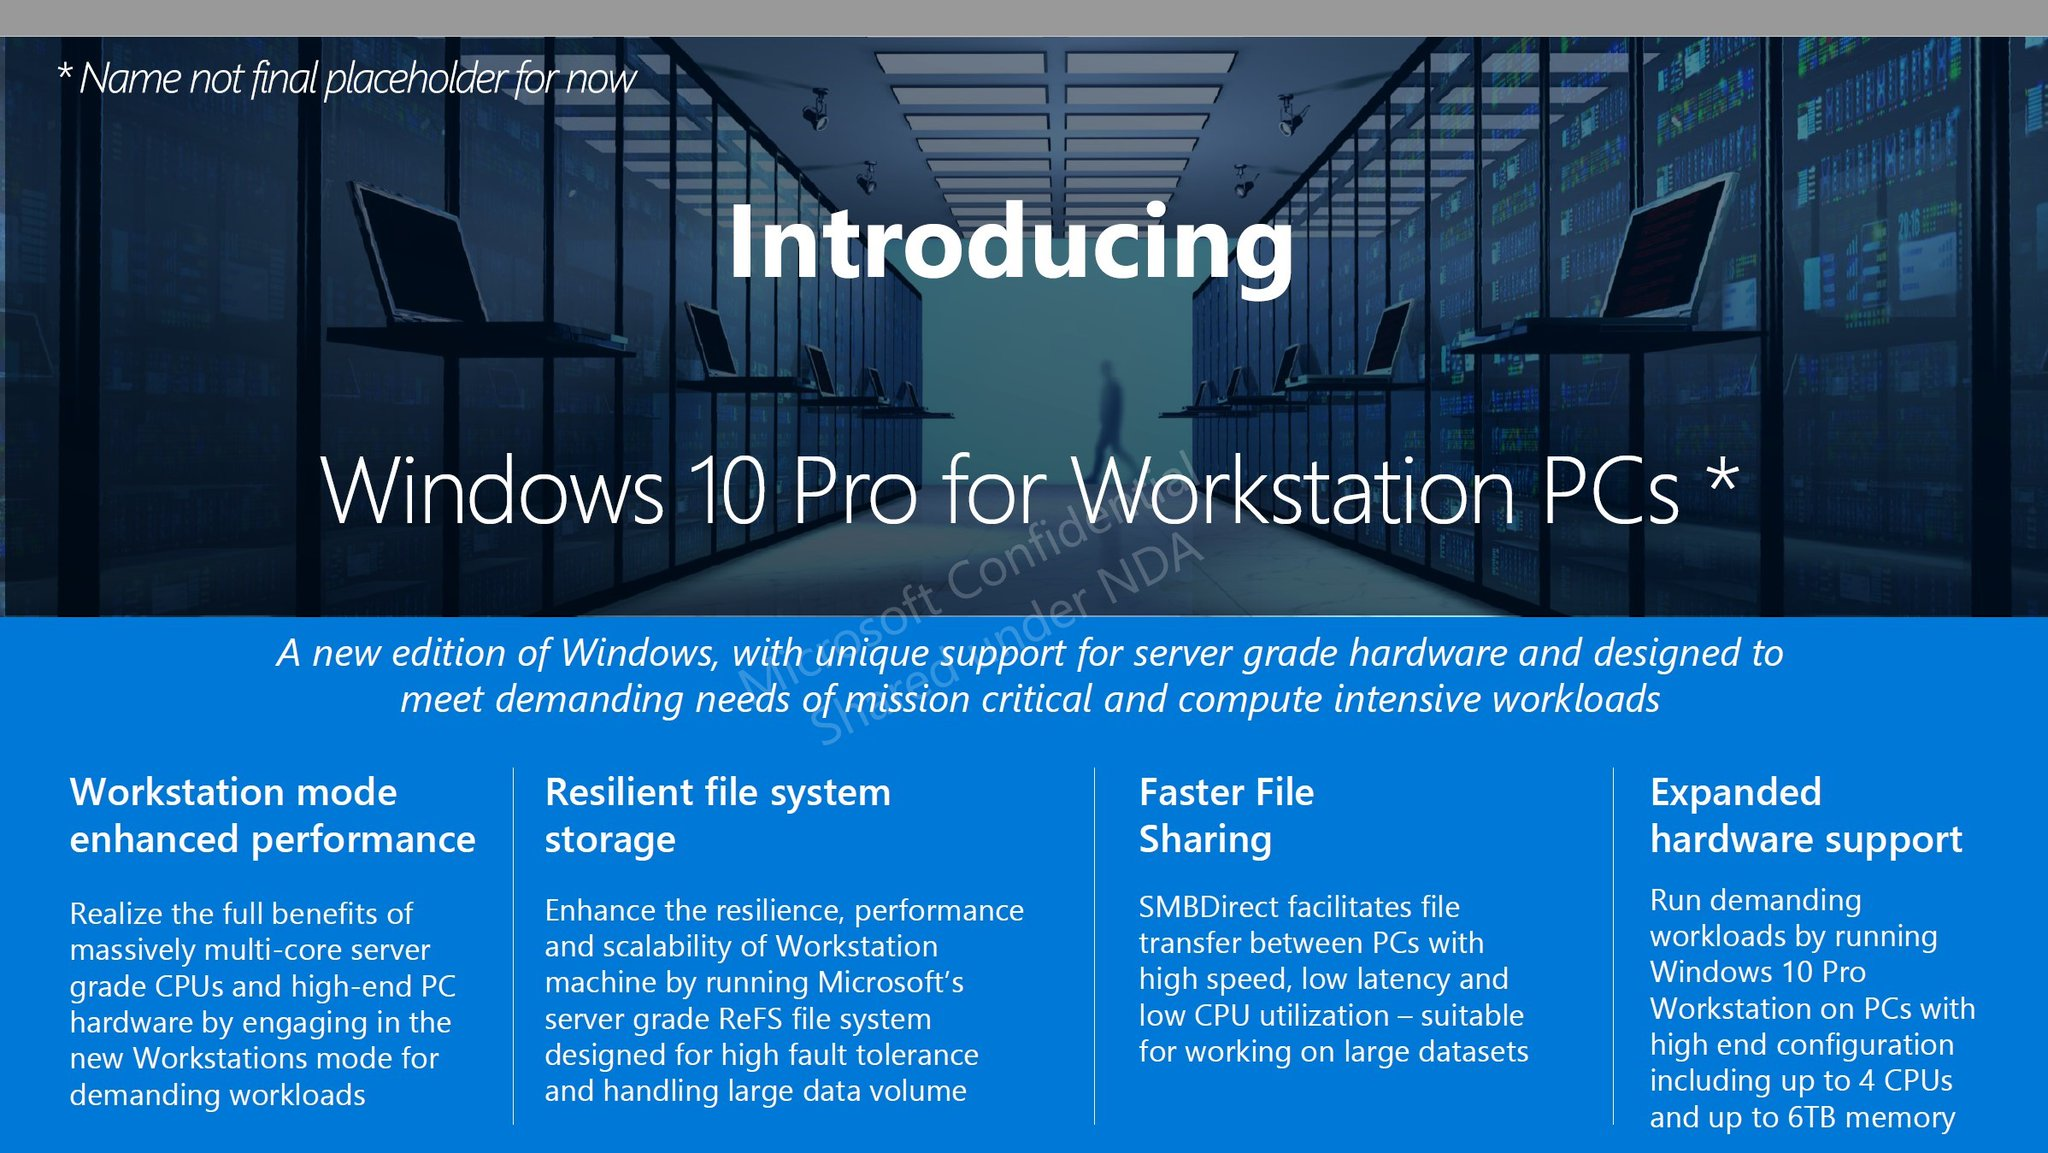 Windows 10 Pro for Advanced PCs comes with a replacement for the classic NTFS file system 1